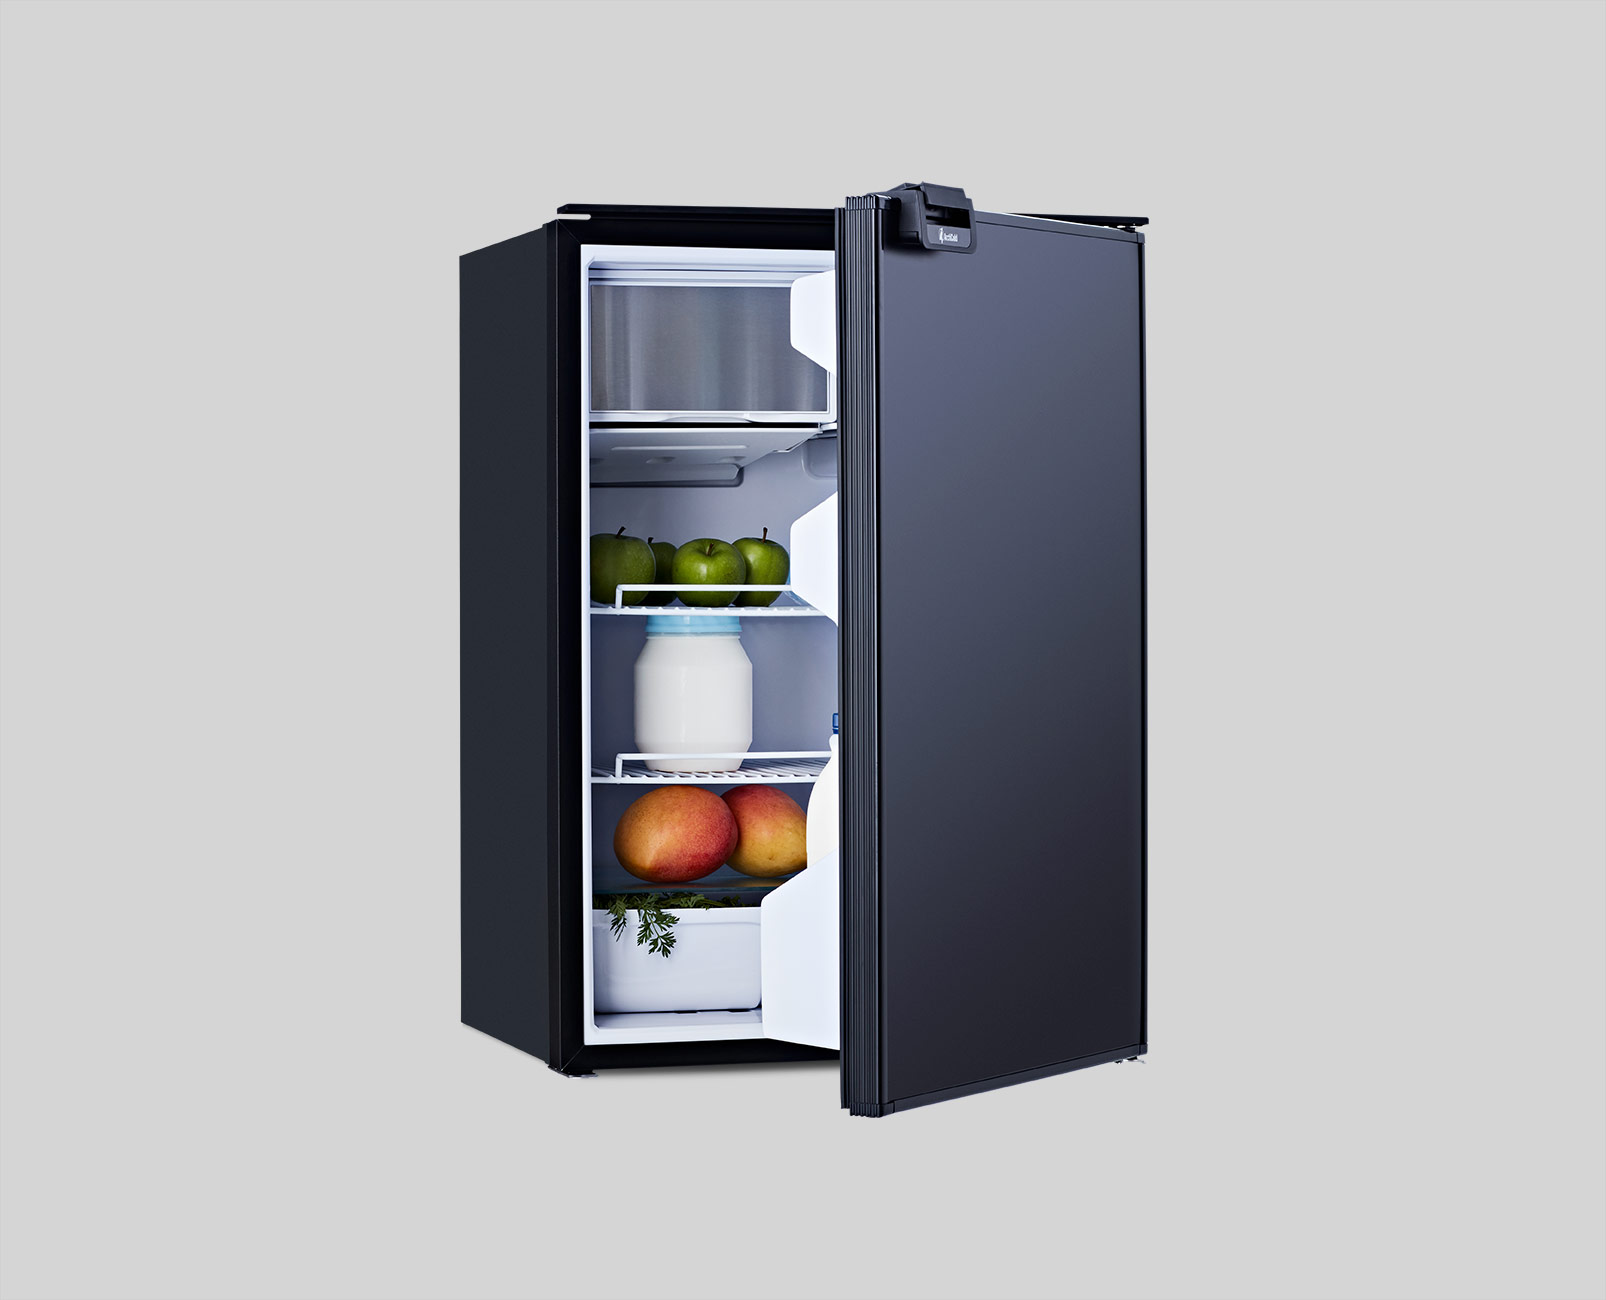 Fridge Freezer Dc130x 130 Ltr 12v 24v Fridge Freezer